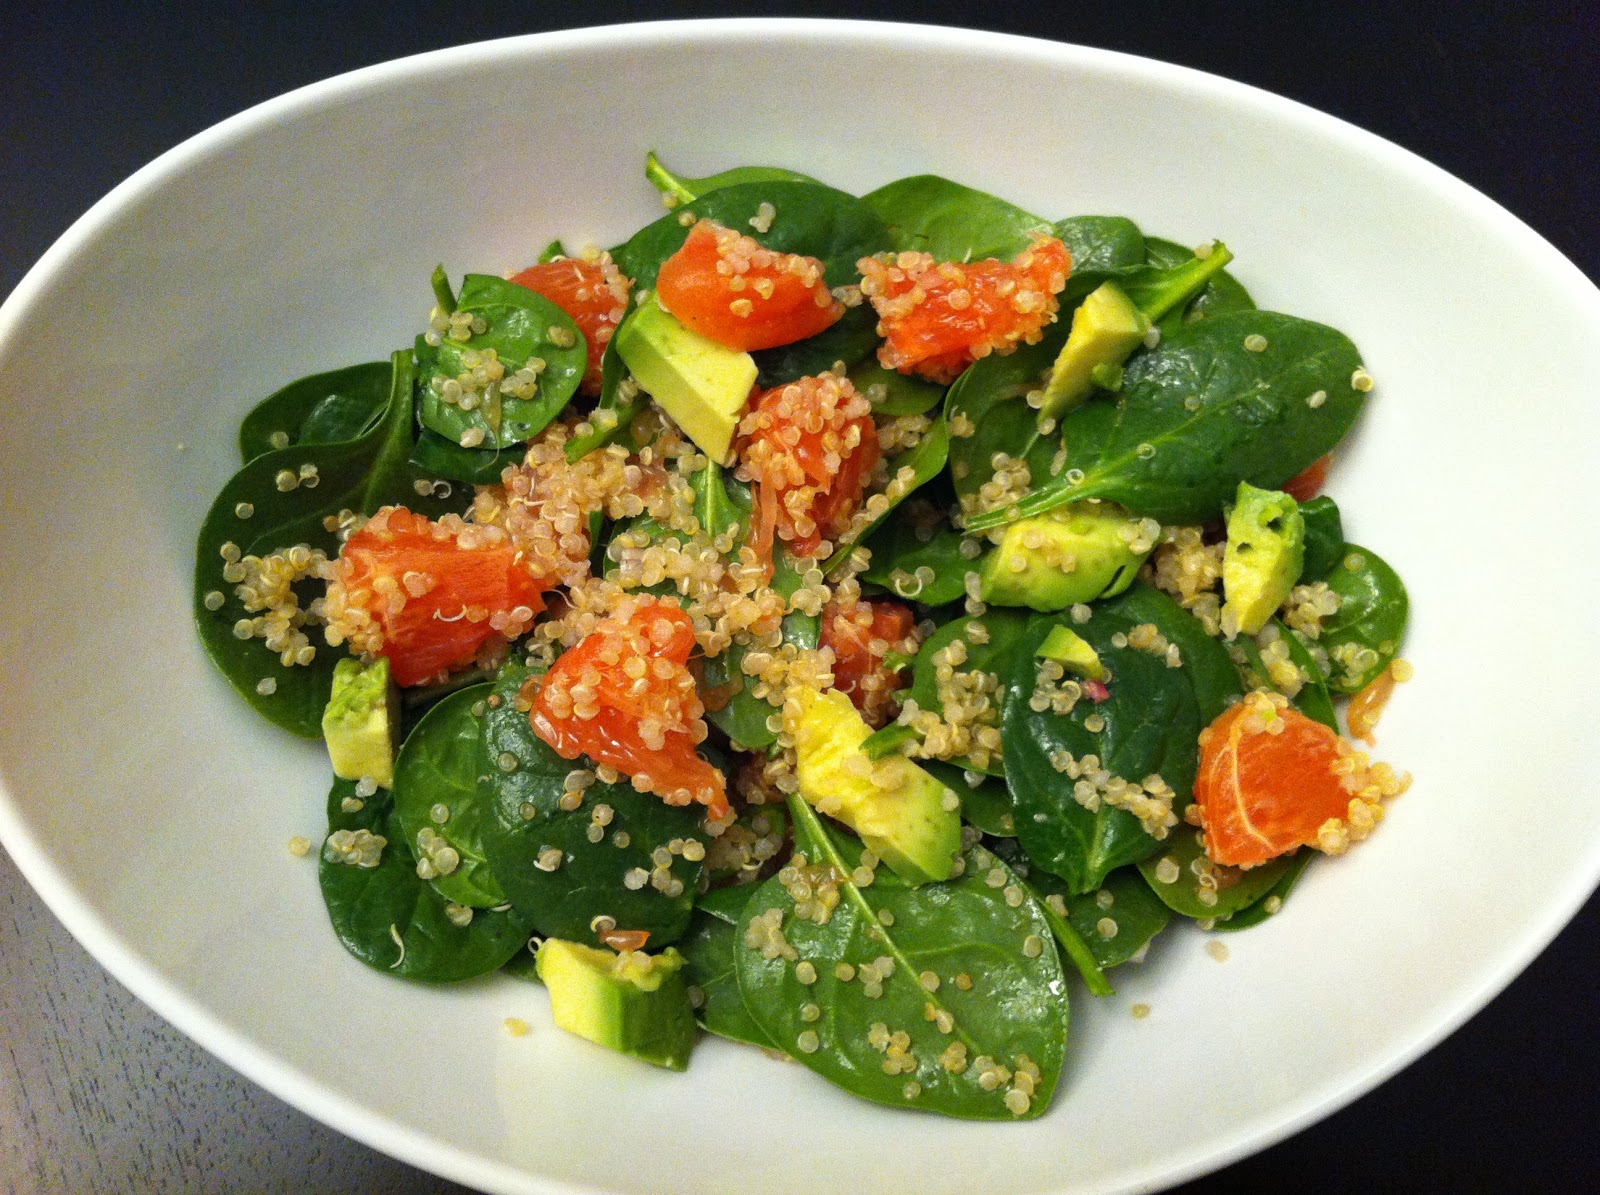 Spinach And Quinoa Salad With Grapefruit And Avocado Recipe ...